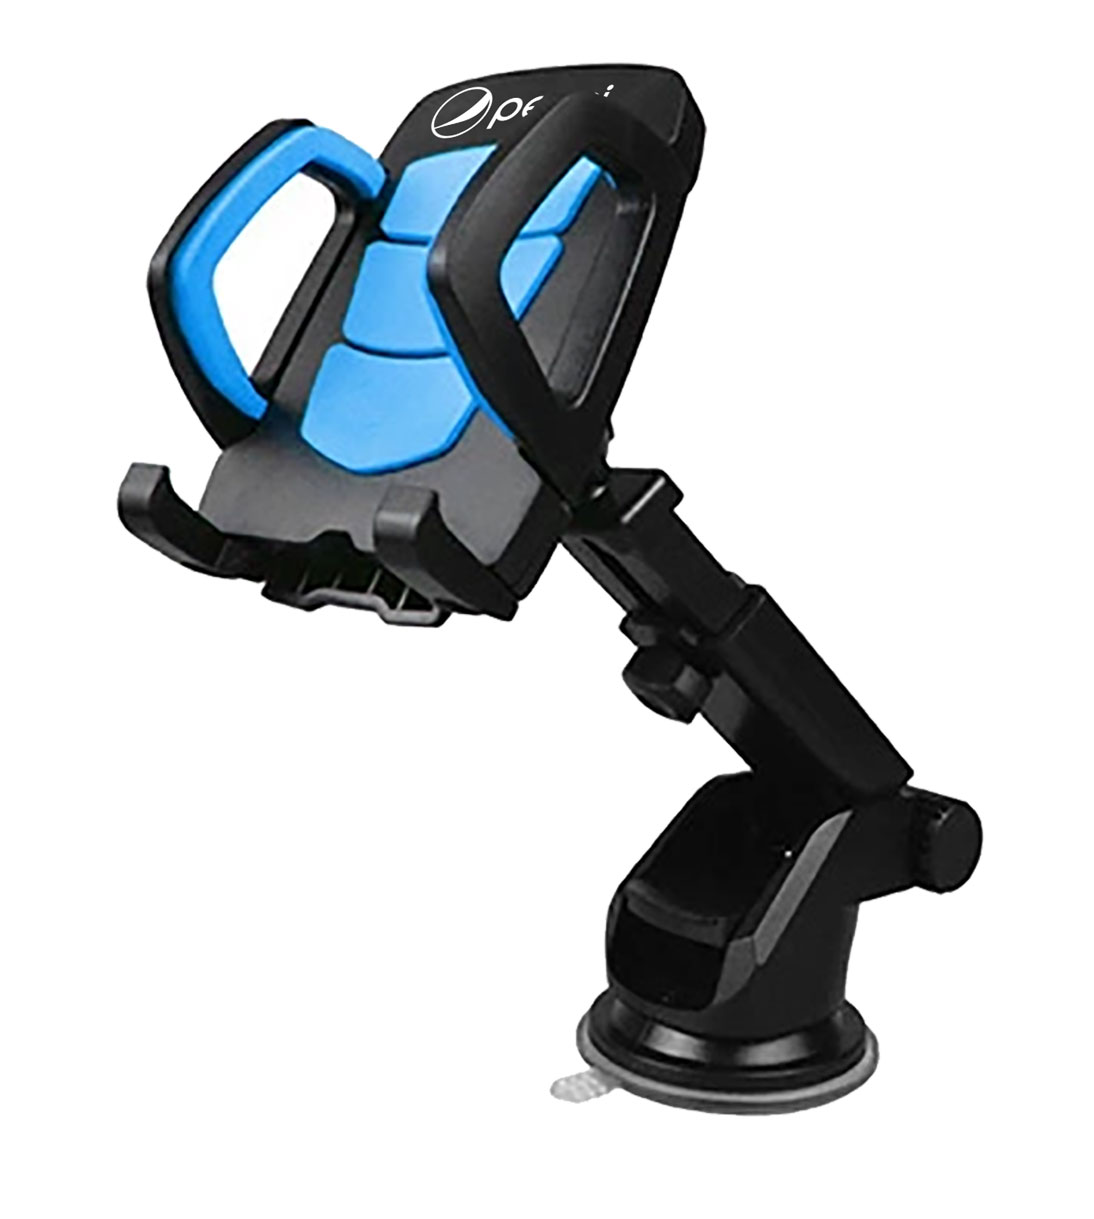 360 Degree Automatic Car Phone Bracket Mobile Phone Holder - Pepsi